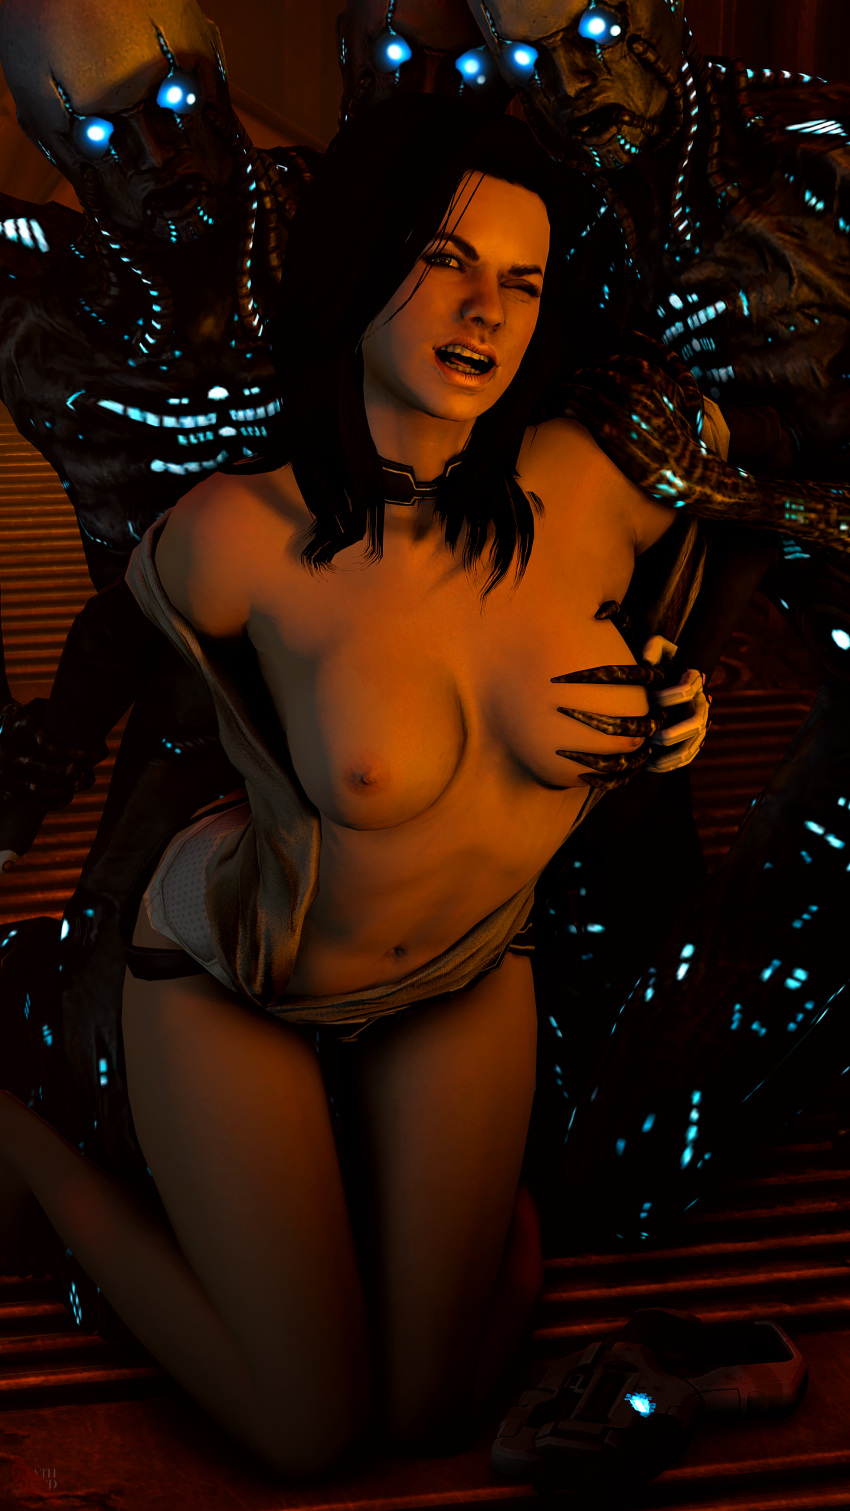 mass shepard effect tali and fanfiction Where is robin stardew valley